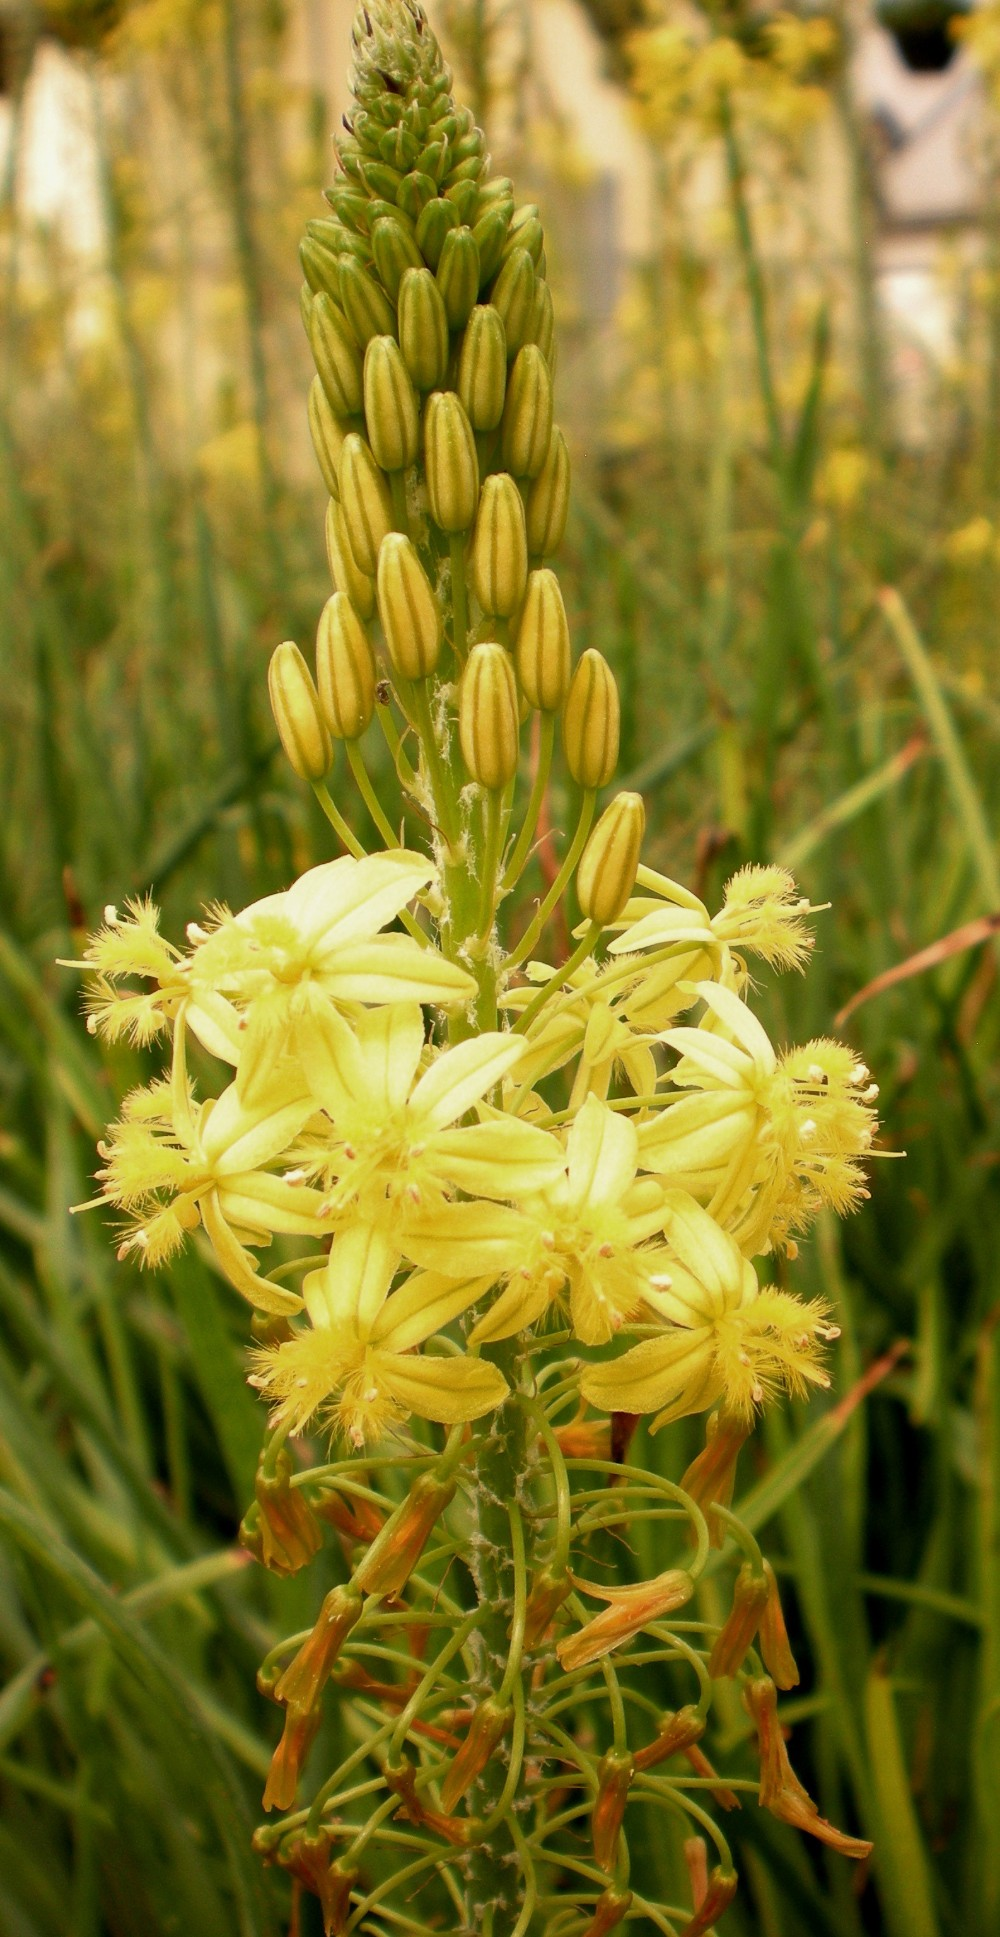 Bulbine frutescens 'Athena Compact Yellow'